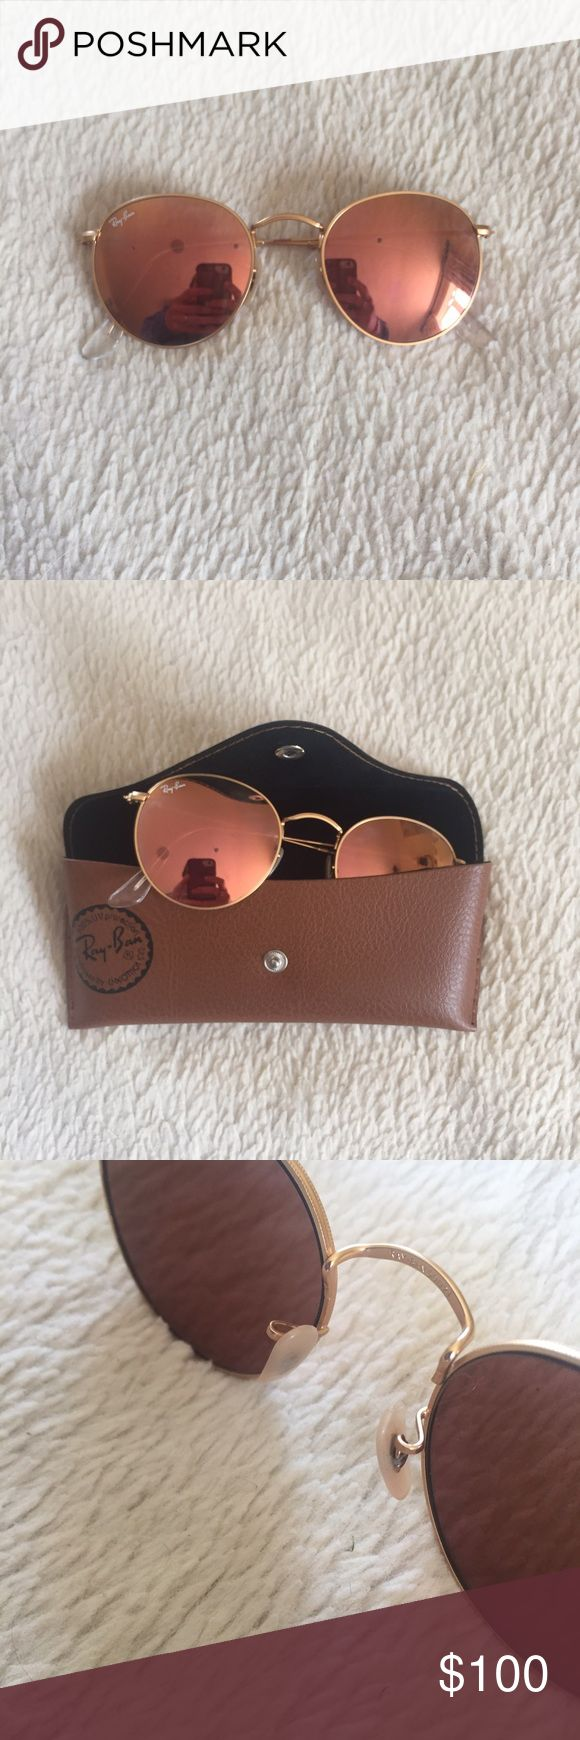 Pink Reflective Circle Ray Bans 100% authentic Ray Bans. Pink reflective. Circle shaped. In amazing condition. No scratches or bends. Comes with case! Let me know if you have questions Ray Bans Accessories Sunglasses